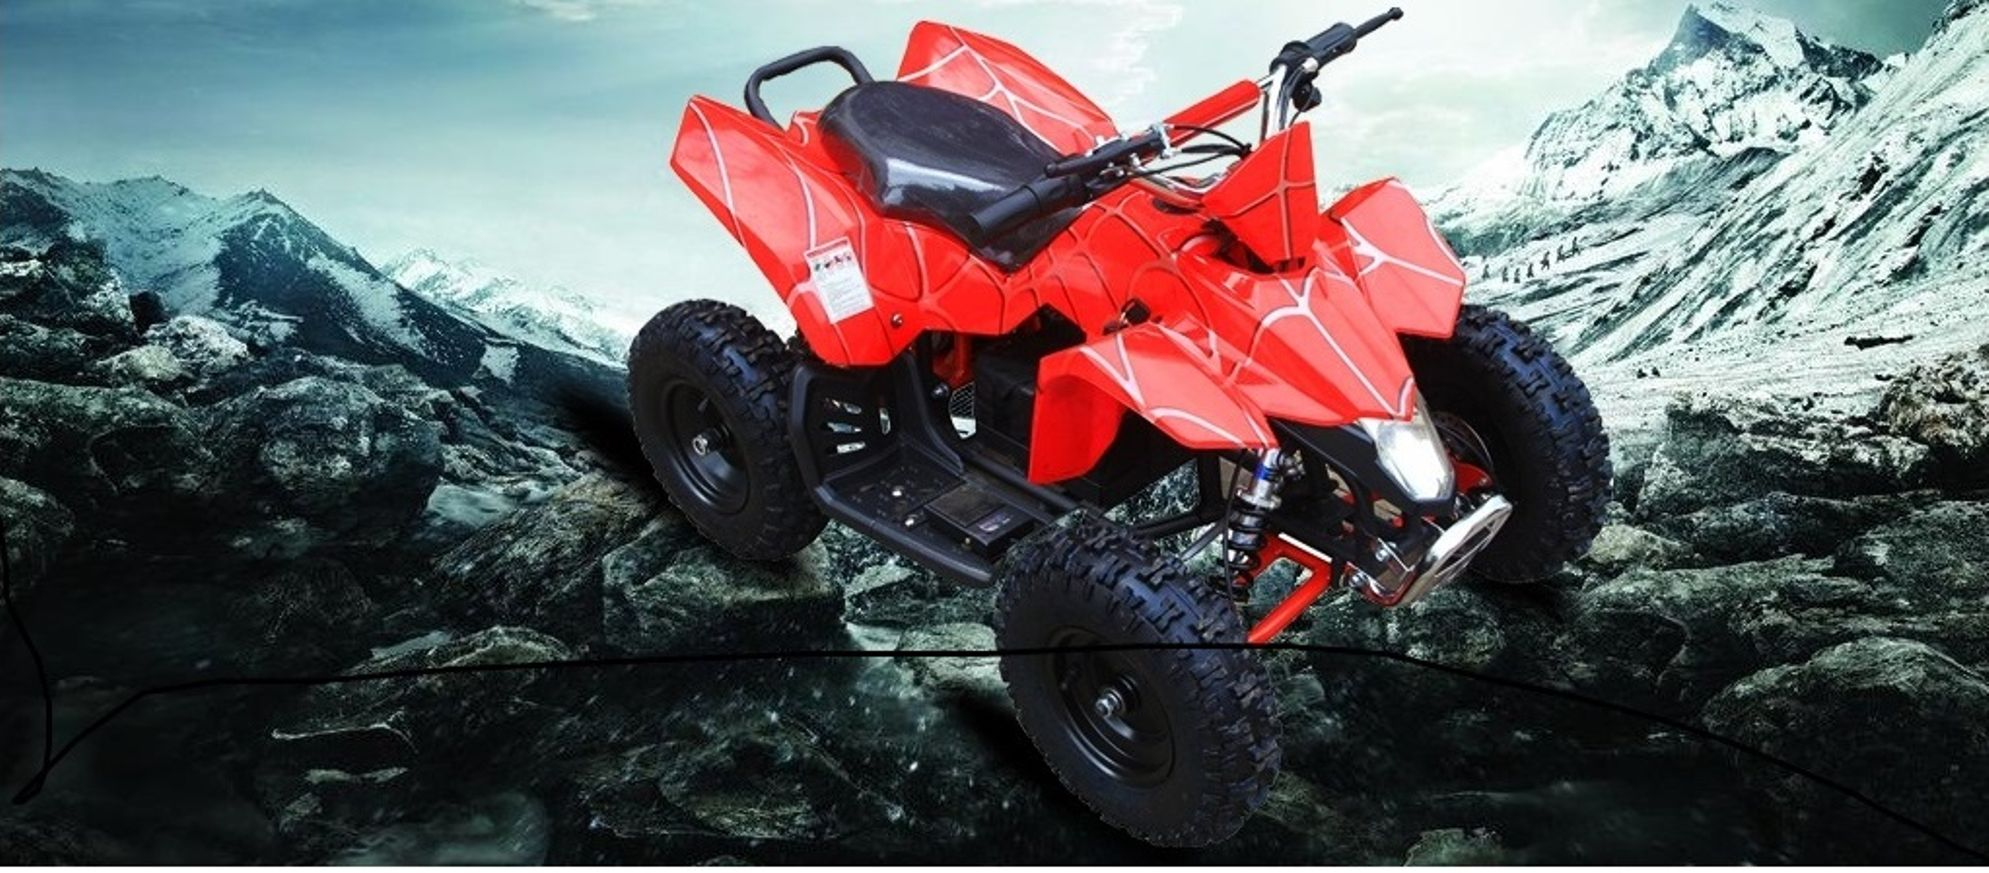 Atv Ride On Quad Electric Car 24 V Battery Power Toy For Kid Real Rubber Tire